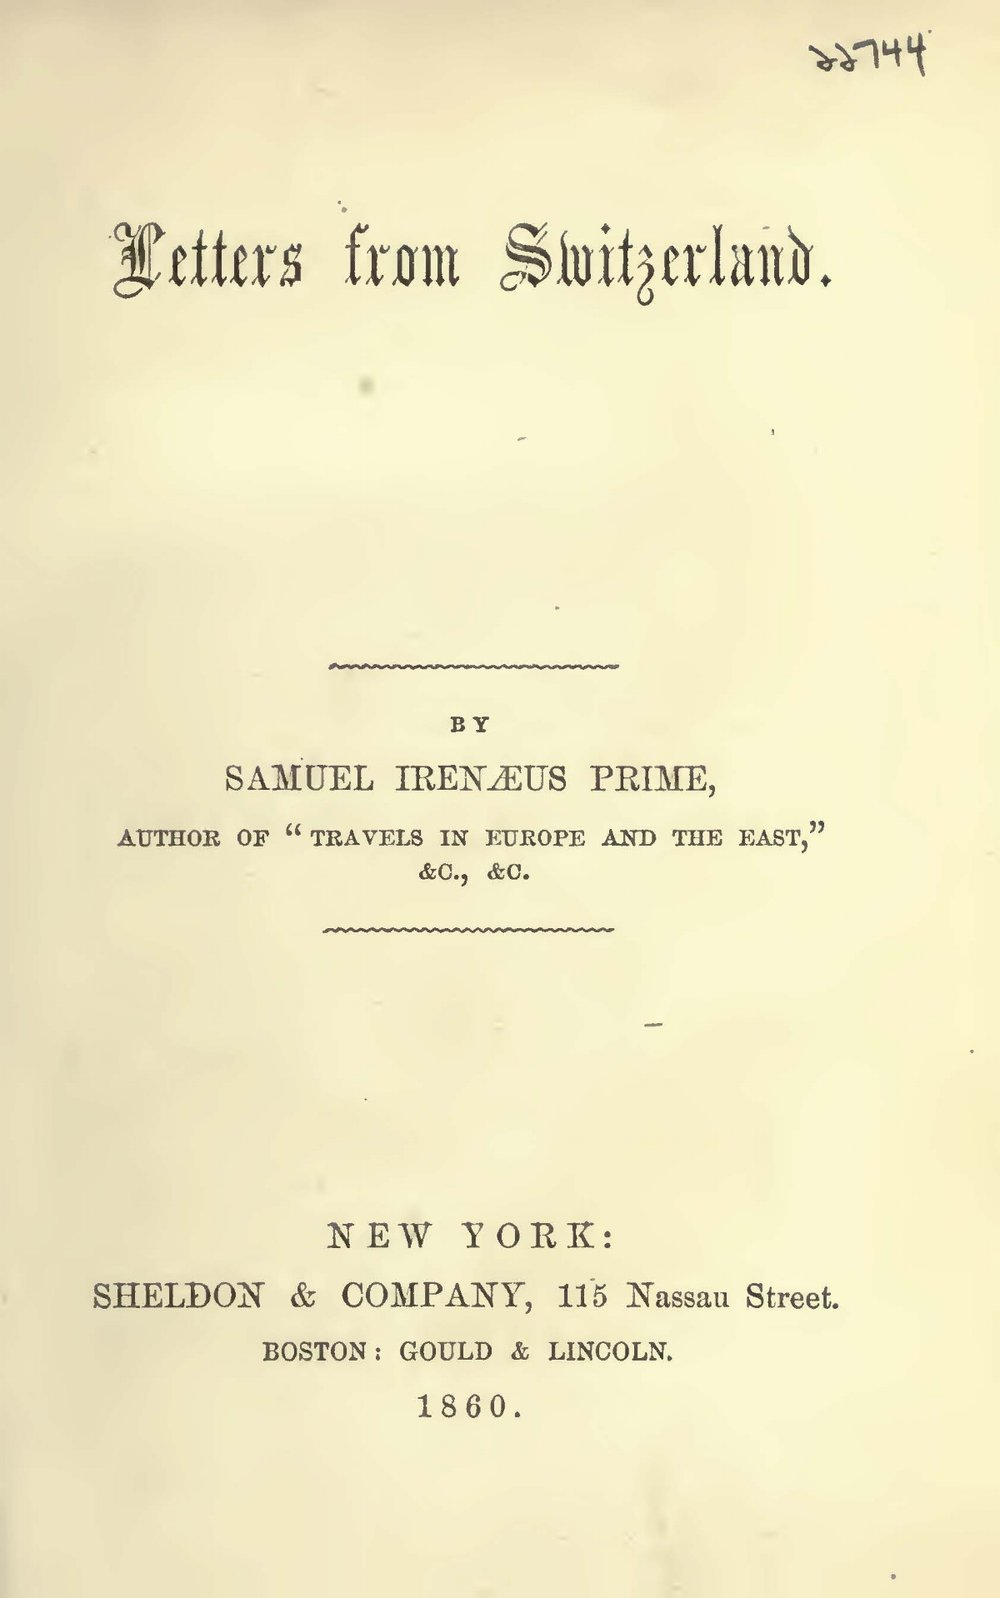 Prime, Samuel Irenaeus, Letters From Switzerland Title Page.jpg